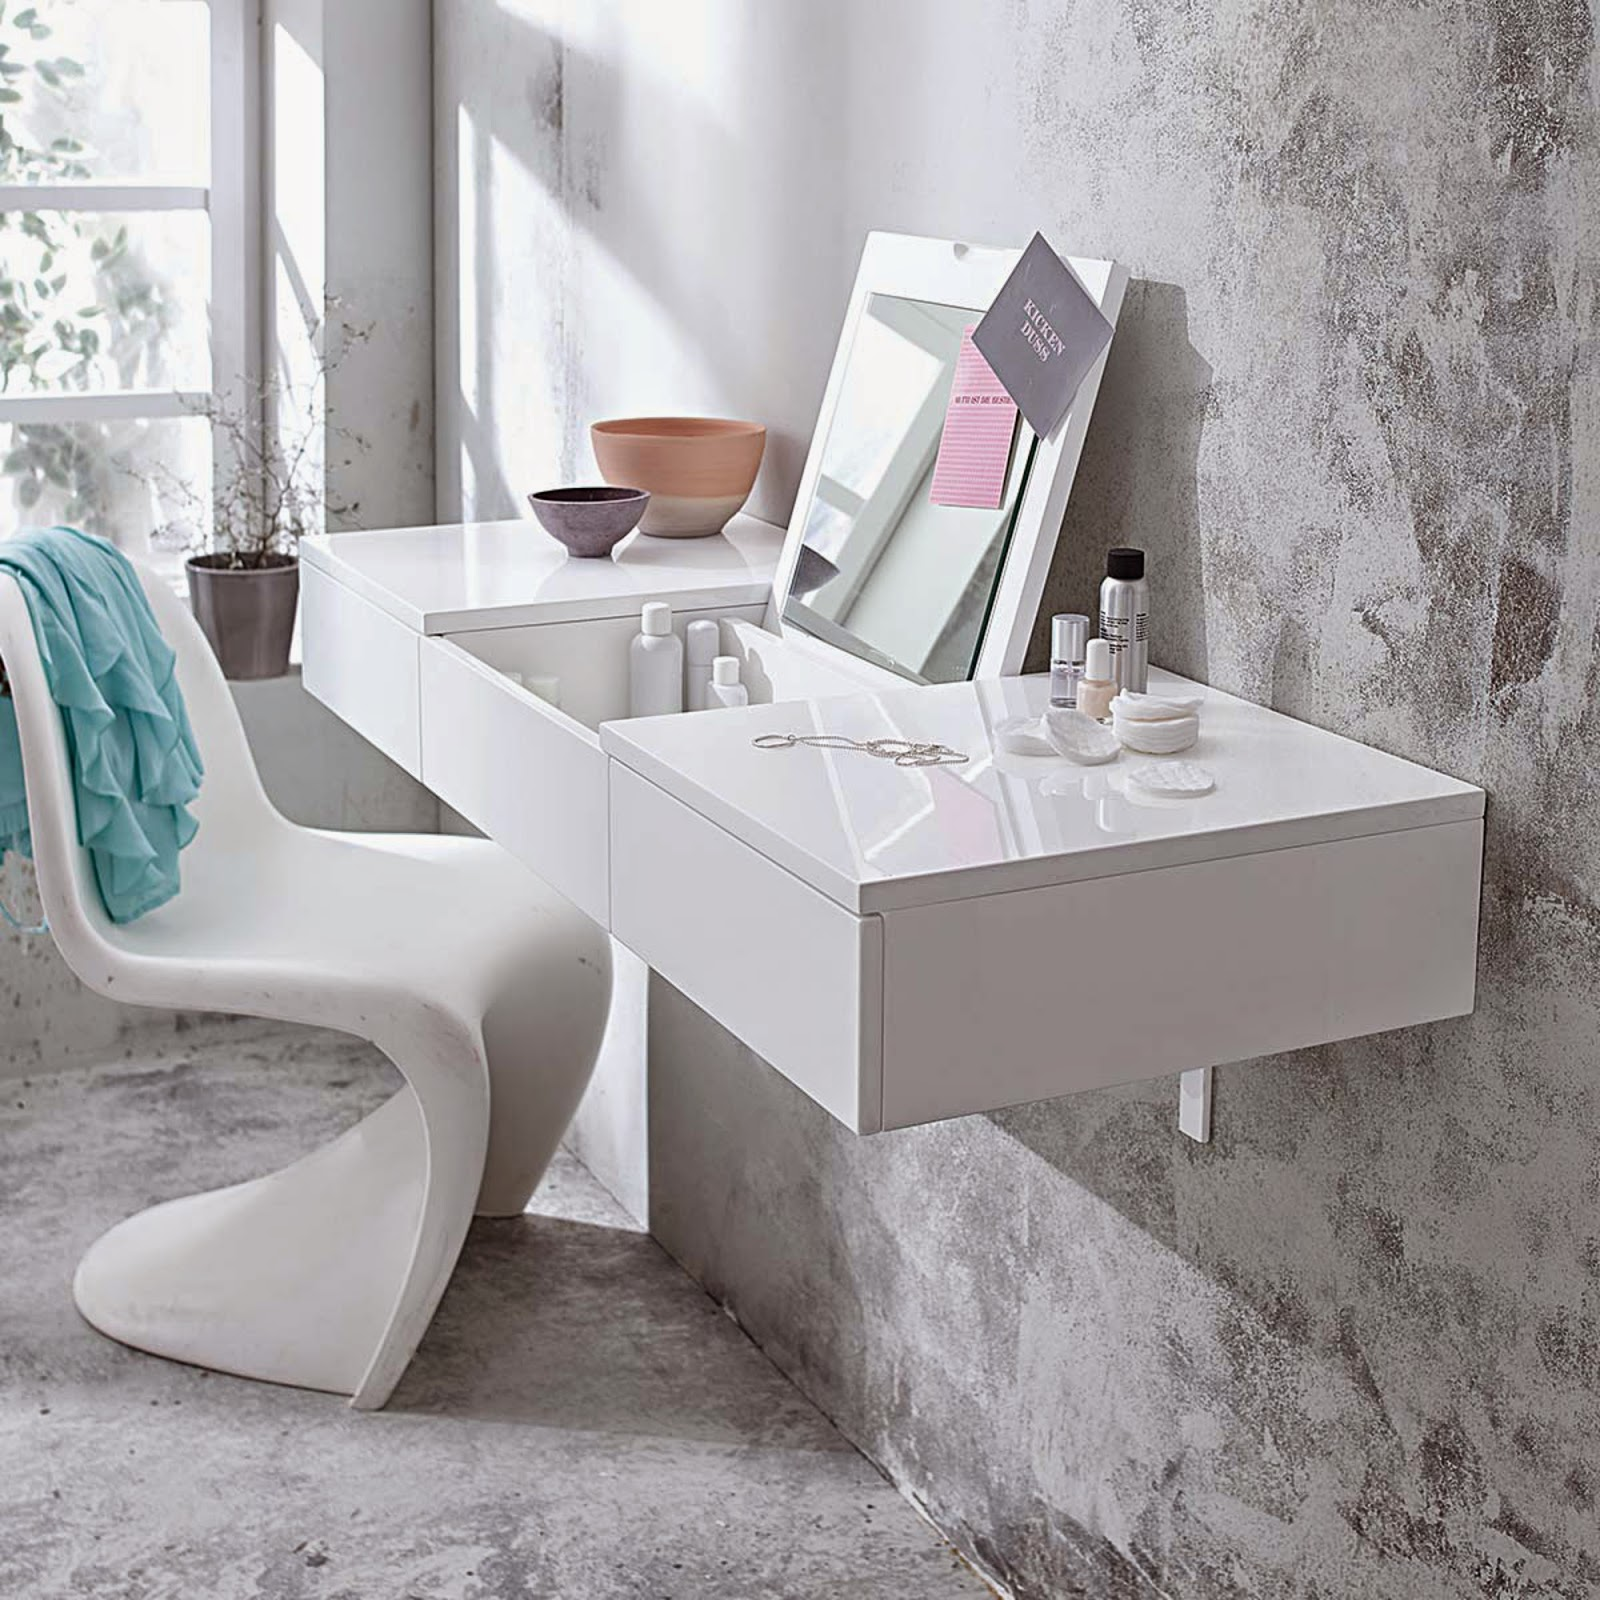 Wall mounted dressing table designs for bedroom - Wall Mounted Modern White Dressing Table Ideas With Folding Mirror